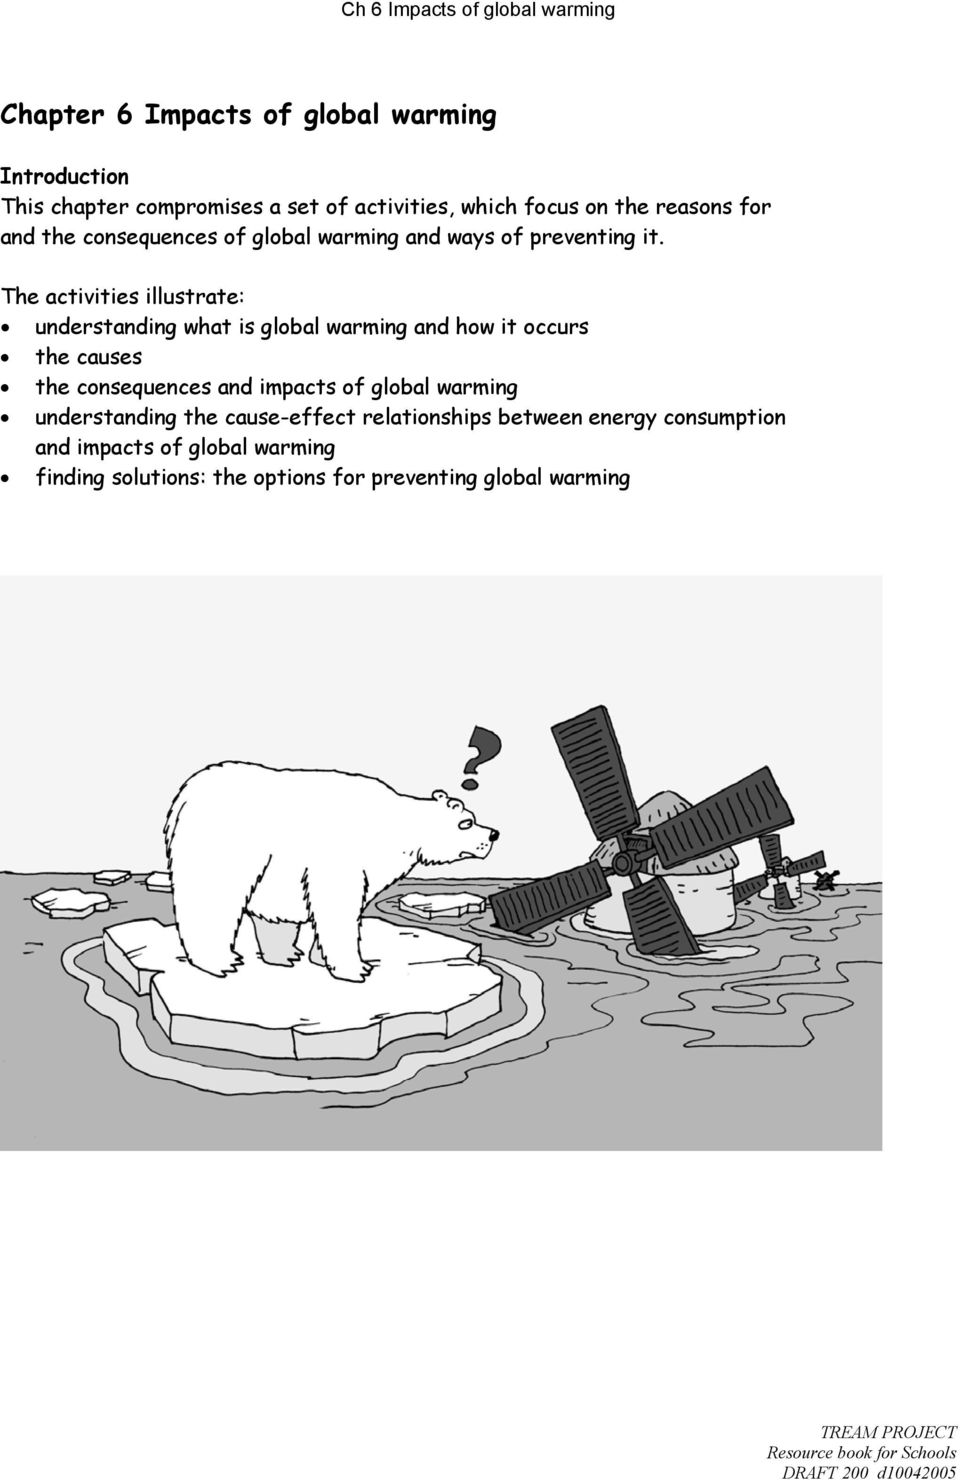 The activities illustrate: understanding what is global warming and how it occurs the causes the consequences and impacts